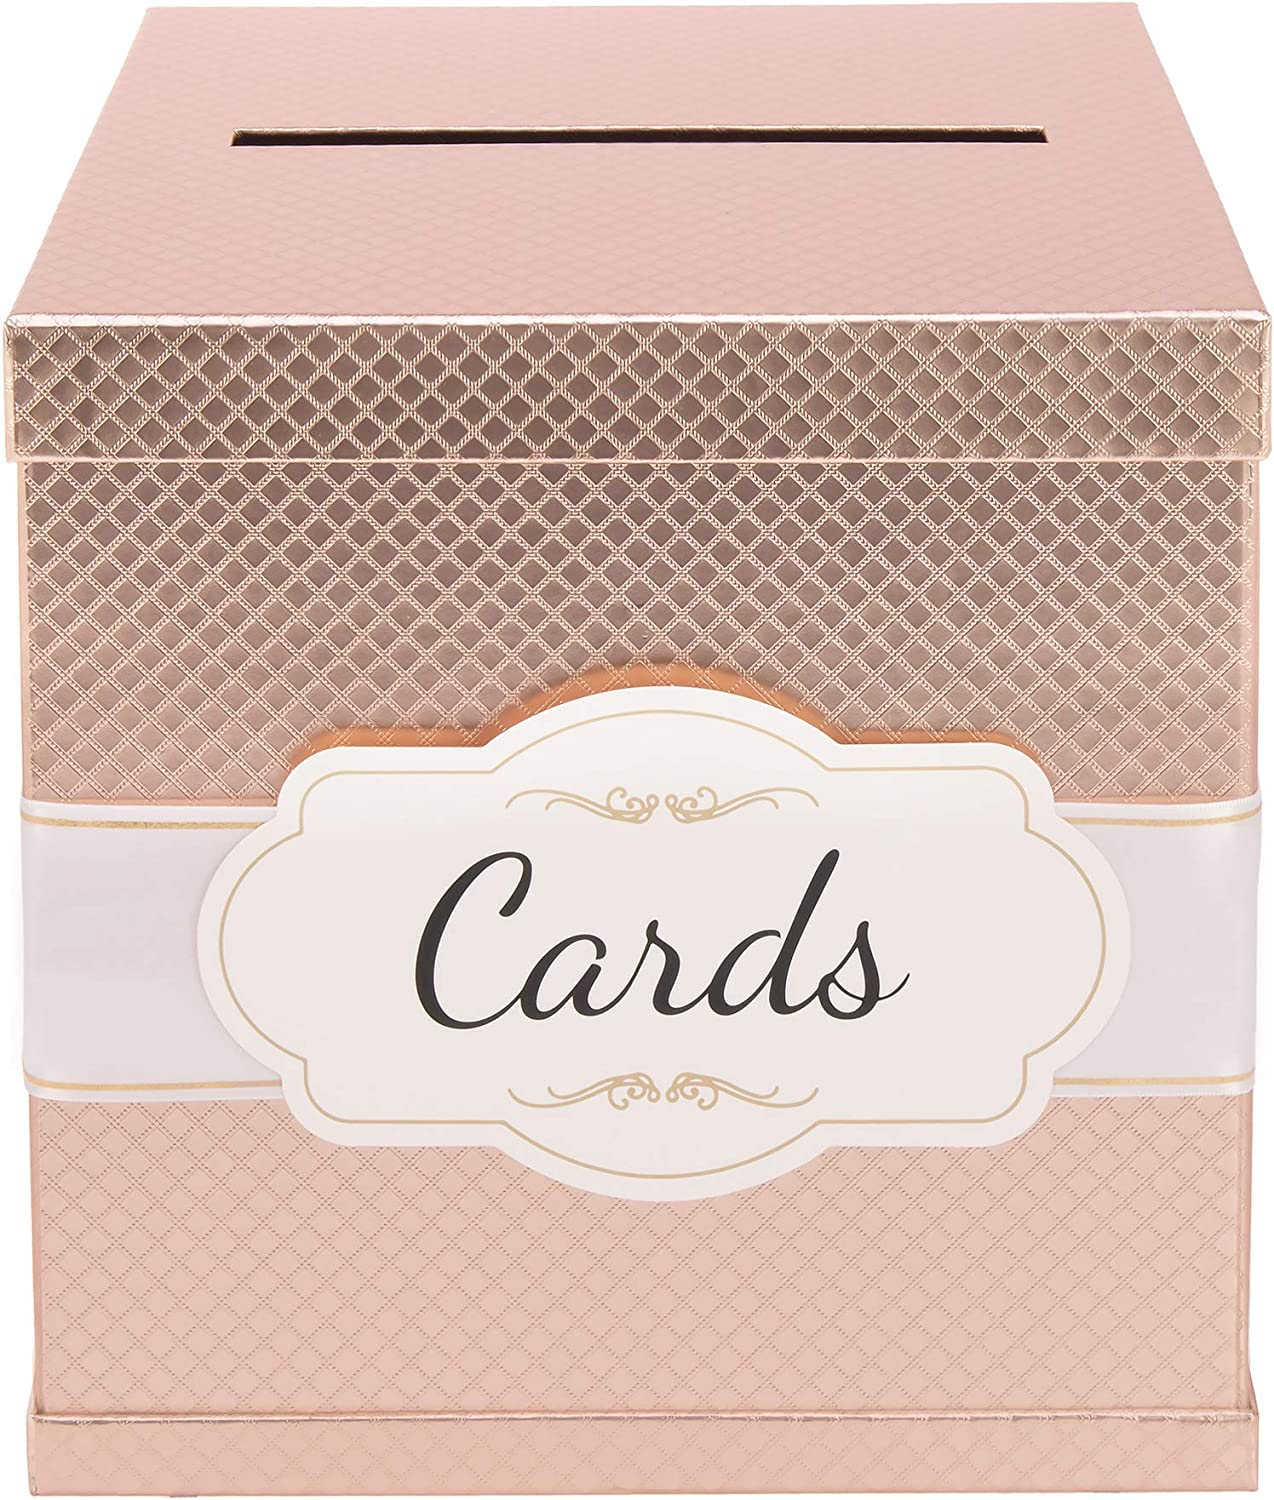 "Rose Gold Card Box - Gold-Foil Satin Ribbon & Cards Label - 10""x10"" Large Premium Finish, Perfect in Wedding Receptions, Birthdays, Graduations, Bridal & Baby Showers by Merry Expressions"